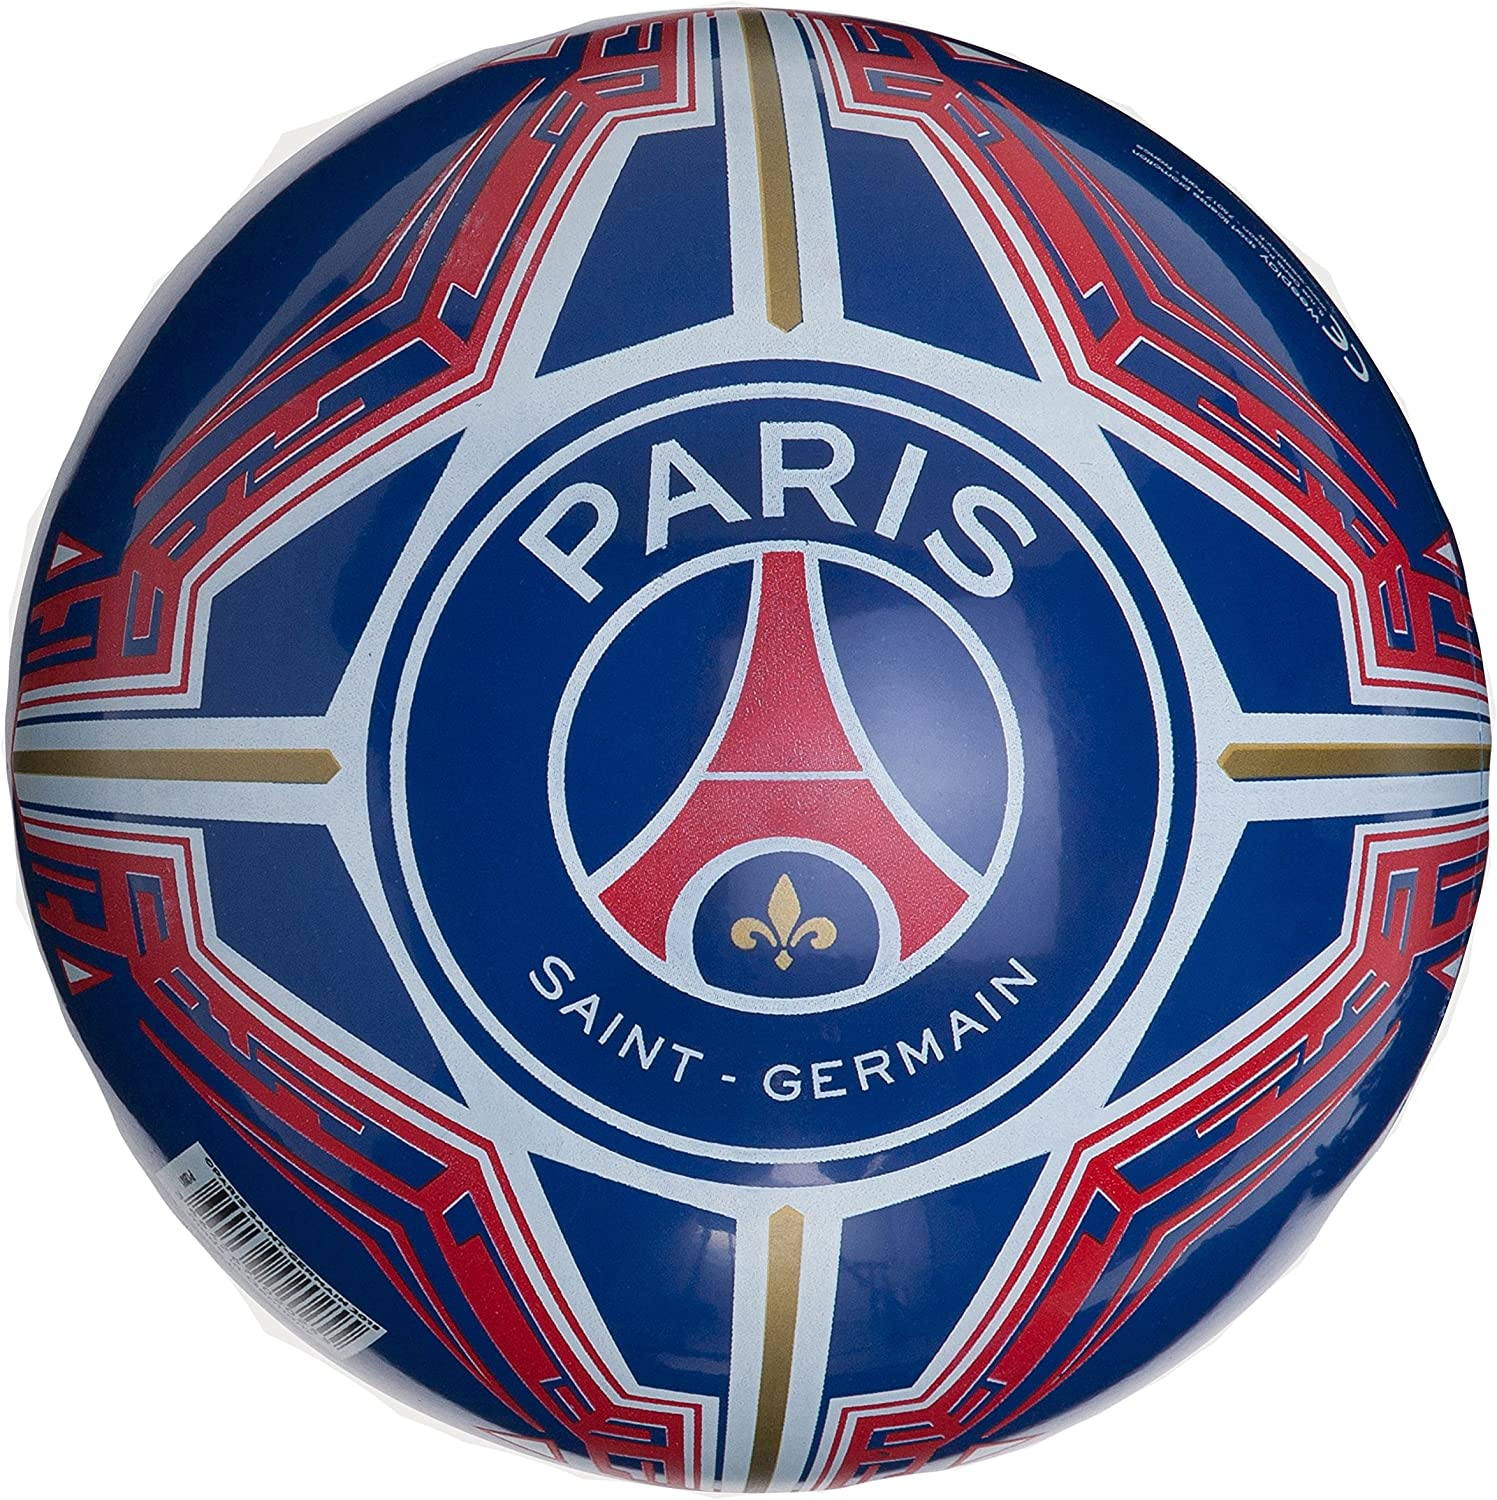 Pelota de playa Paris Saint Germain – T 4: Amazon.es: Deportes y ...